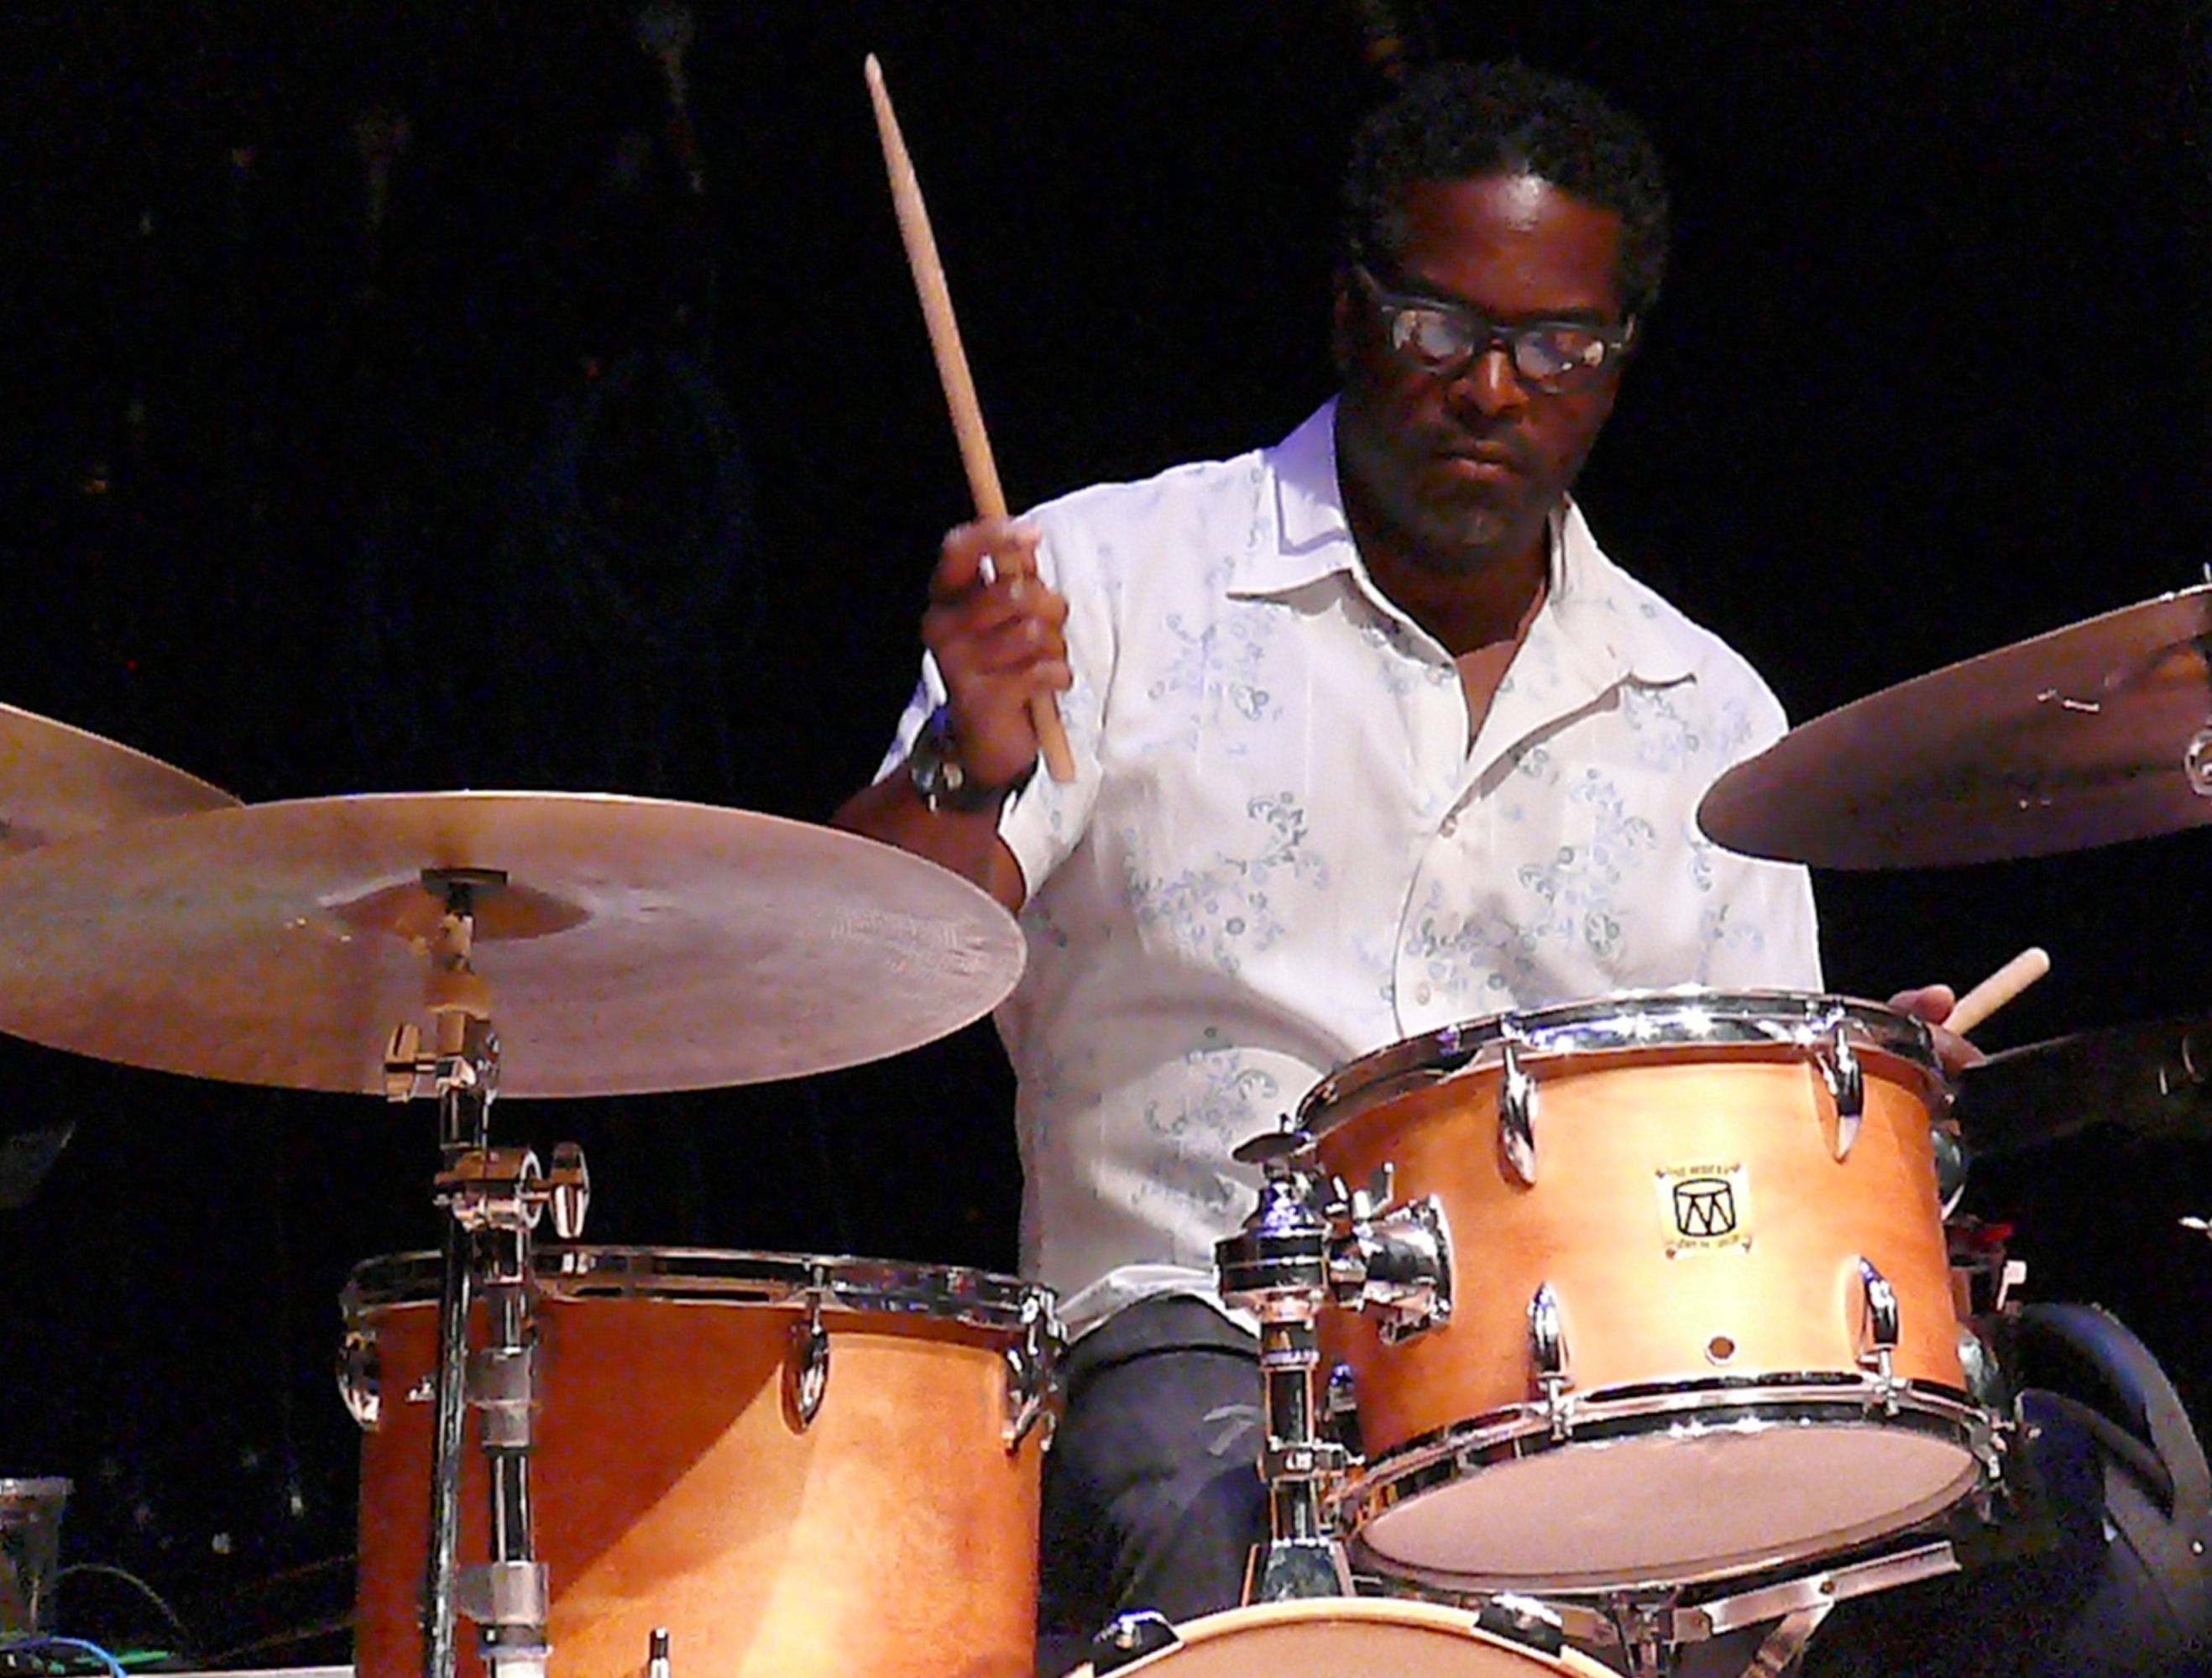 Gerald cleaver at the vision festival, new york in june 2013